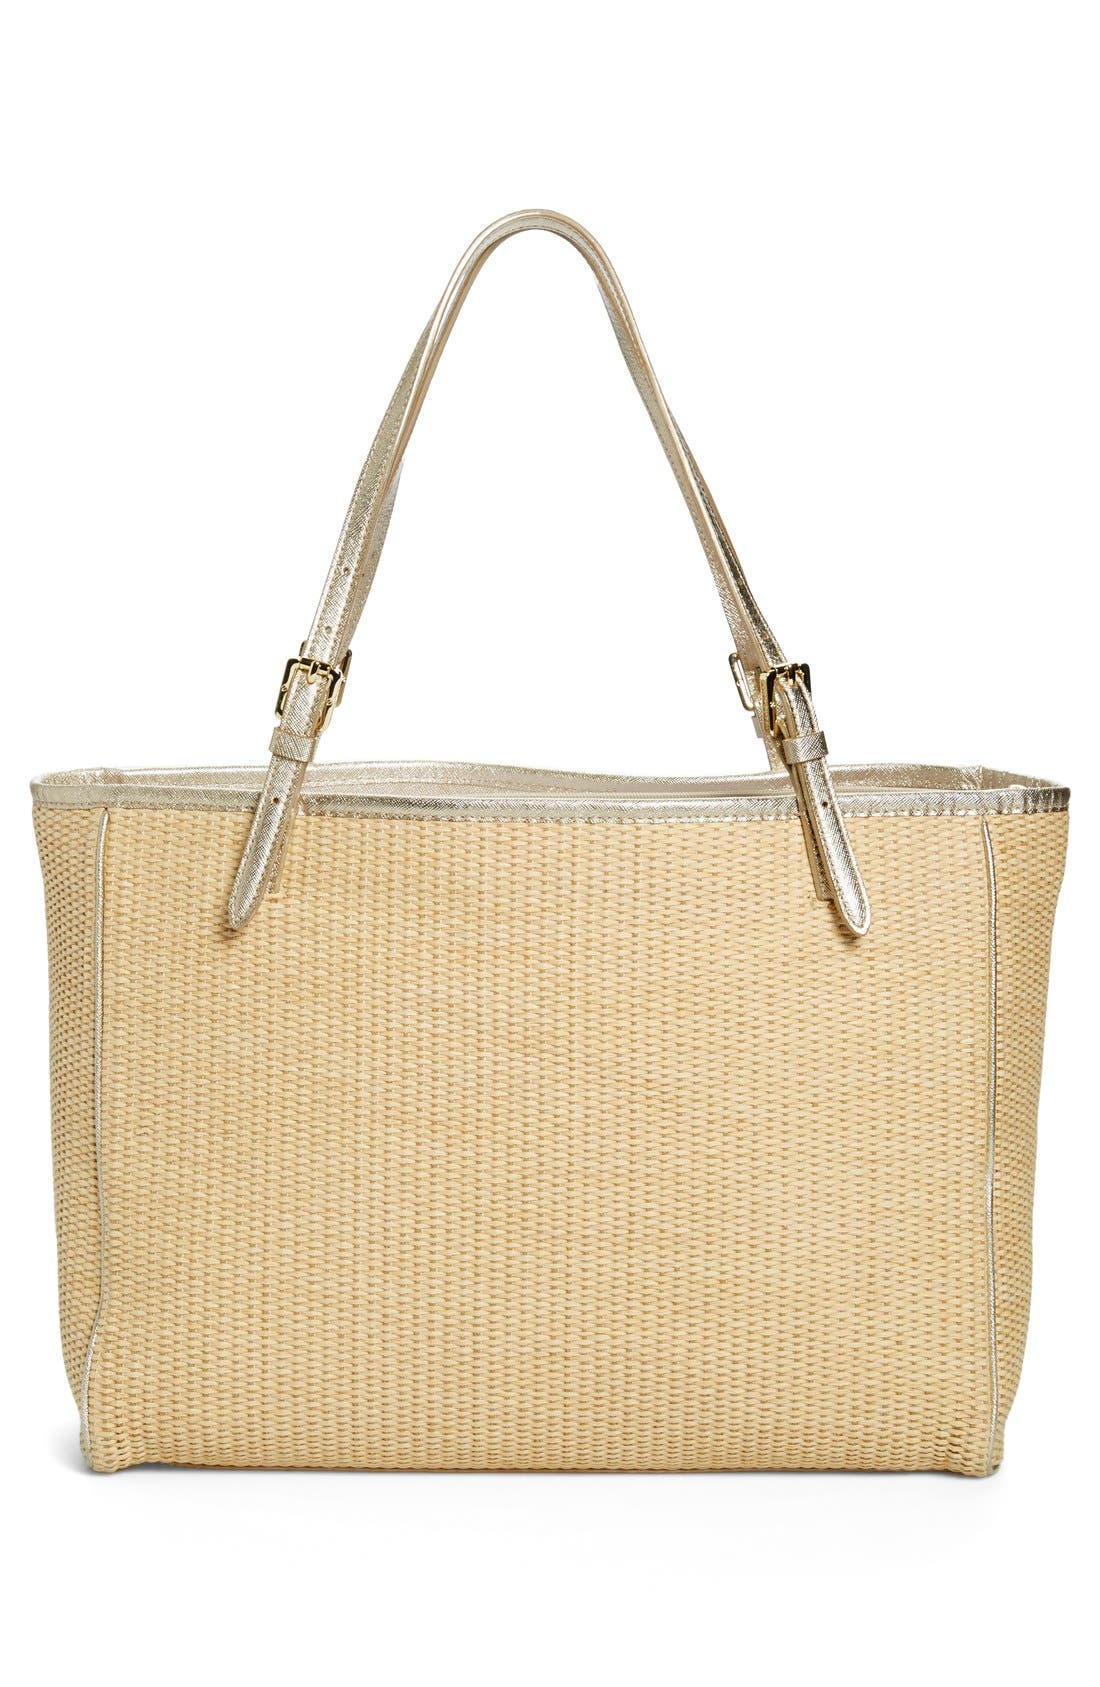 Alternate Image 3  - Tory Burch 'York' Straw Buckle Tote